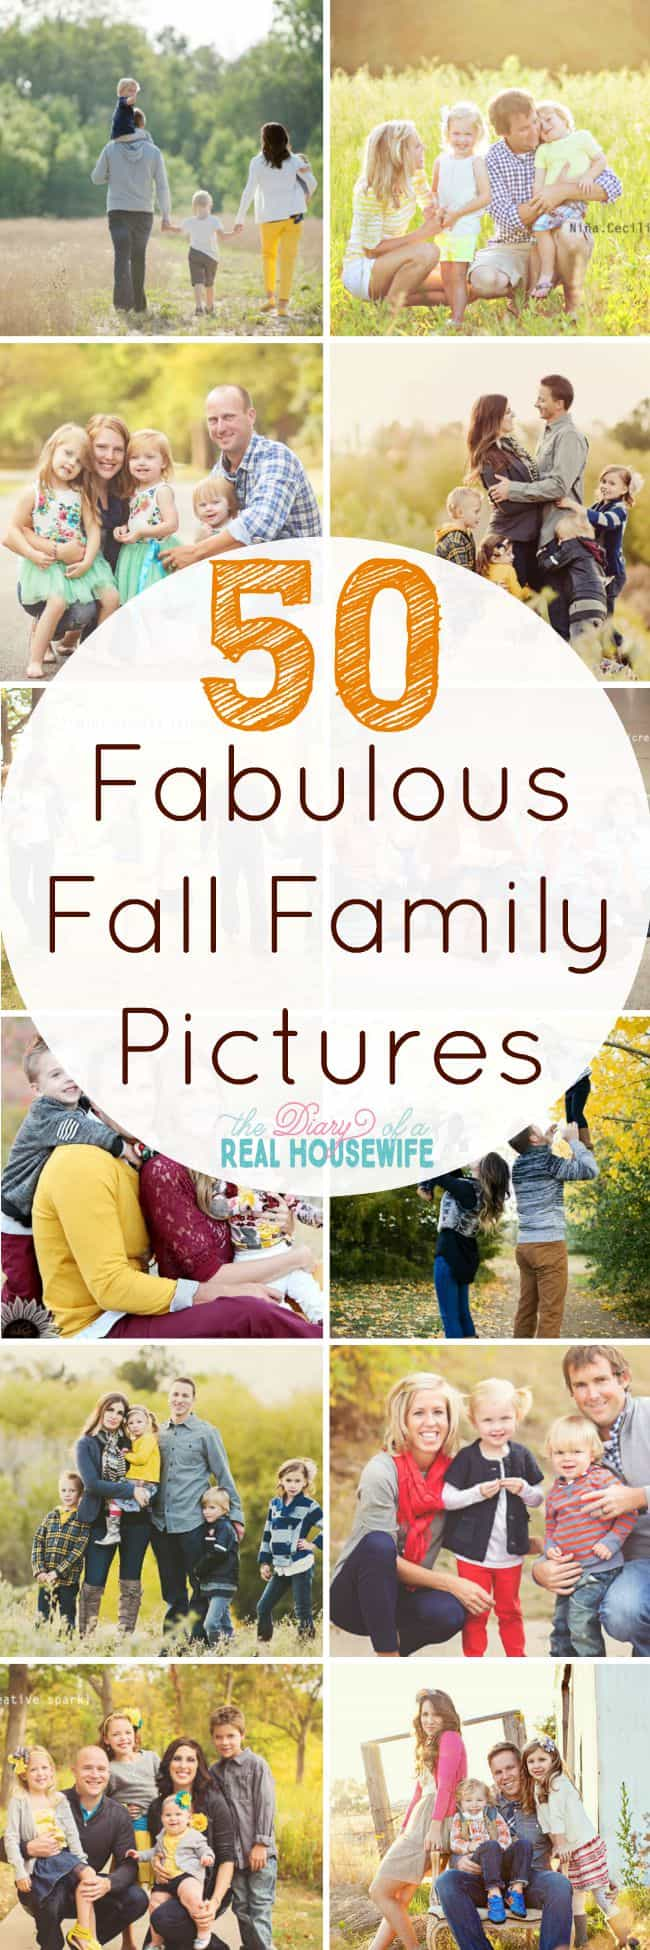 Fabulous Fall Family Picture Ideas.